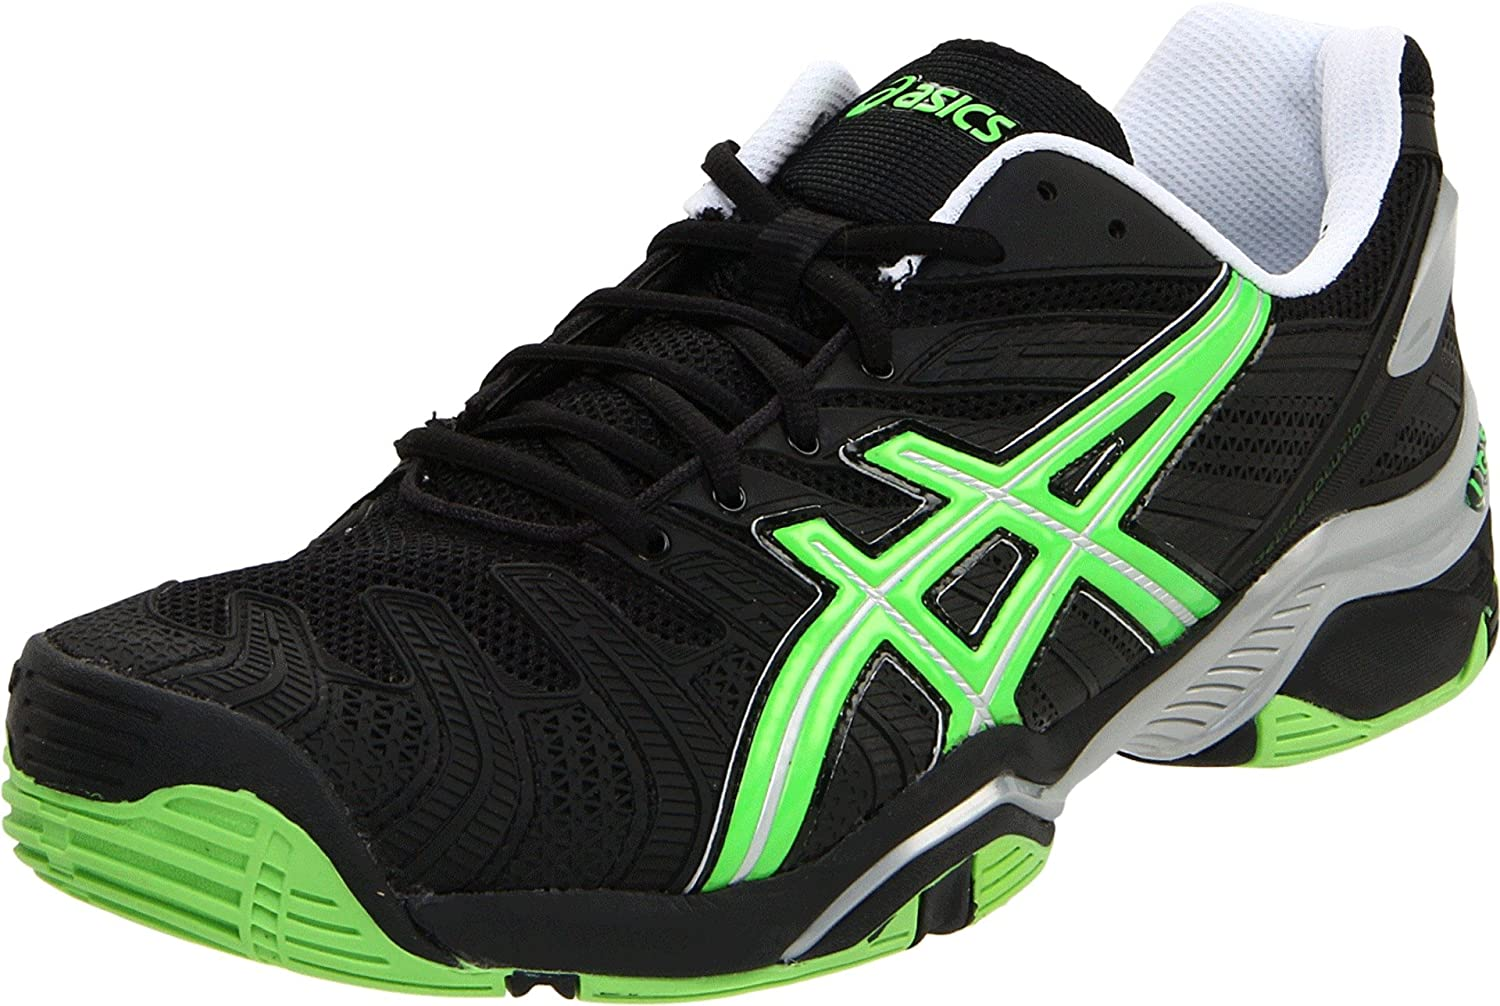 ASICS Men's GEL-Resolution 4 Tennis Shoe,Black/Apple Green/Lightning,10.5 M US $60.32